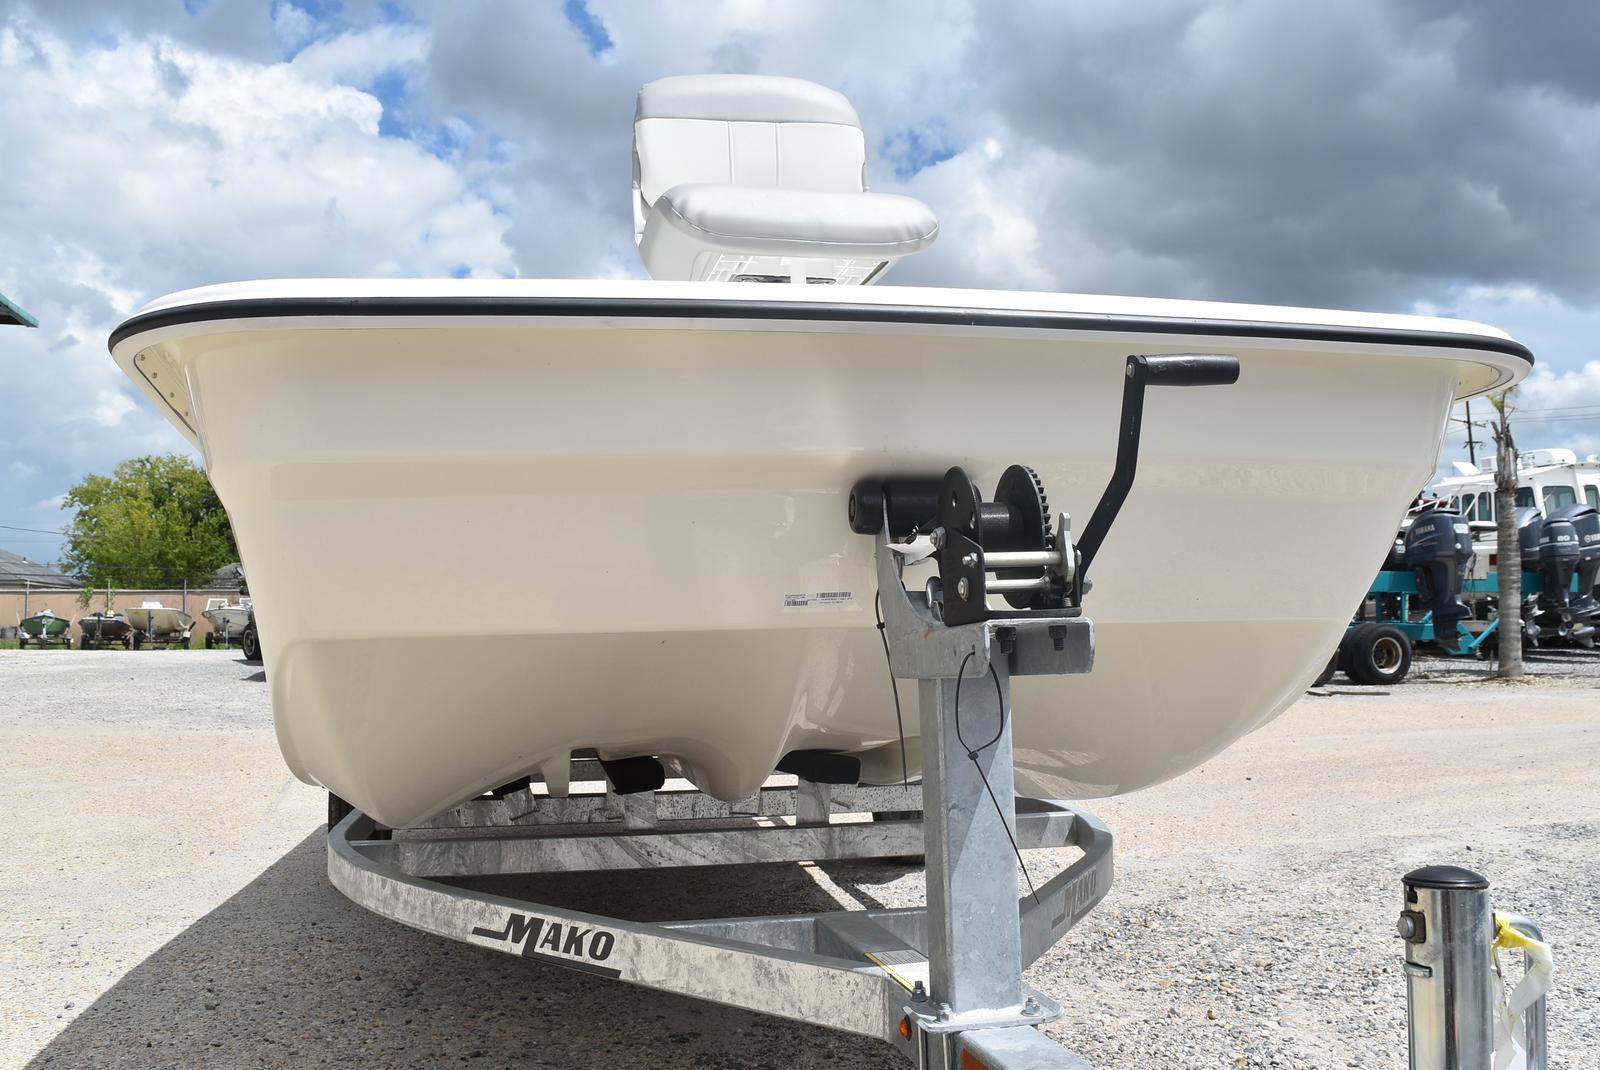 2020 Mako boat for sale, model of the boat is Pro Skiff 17, 75 ELPT & Image # 314 of 702